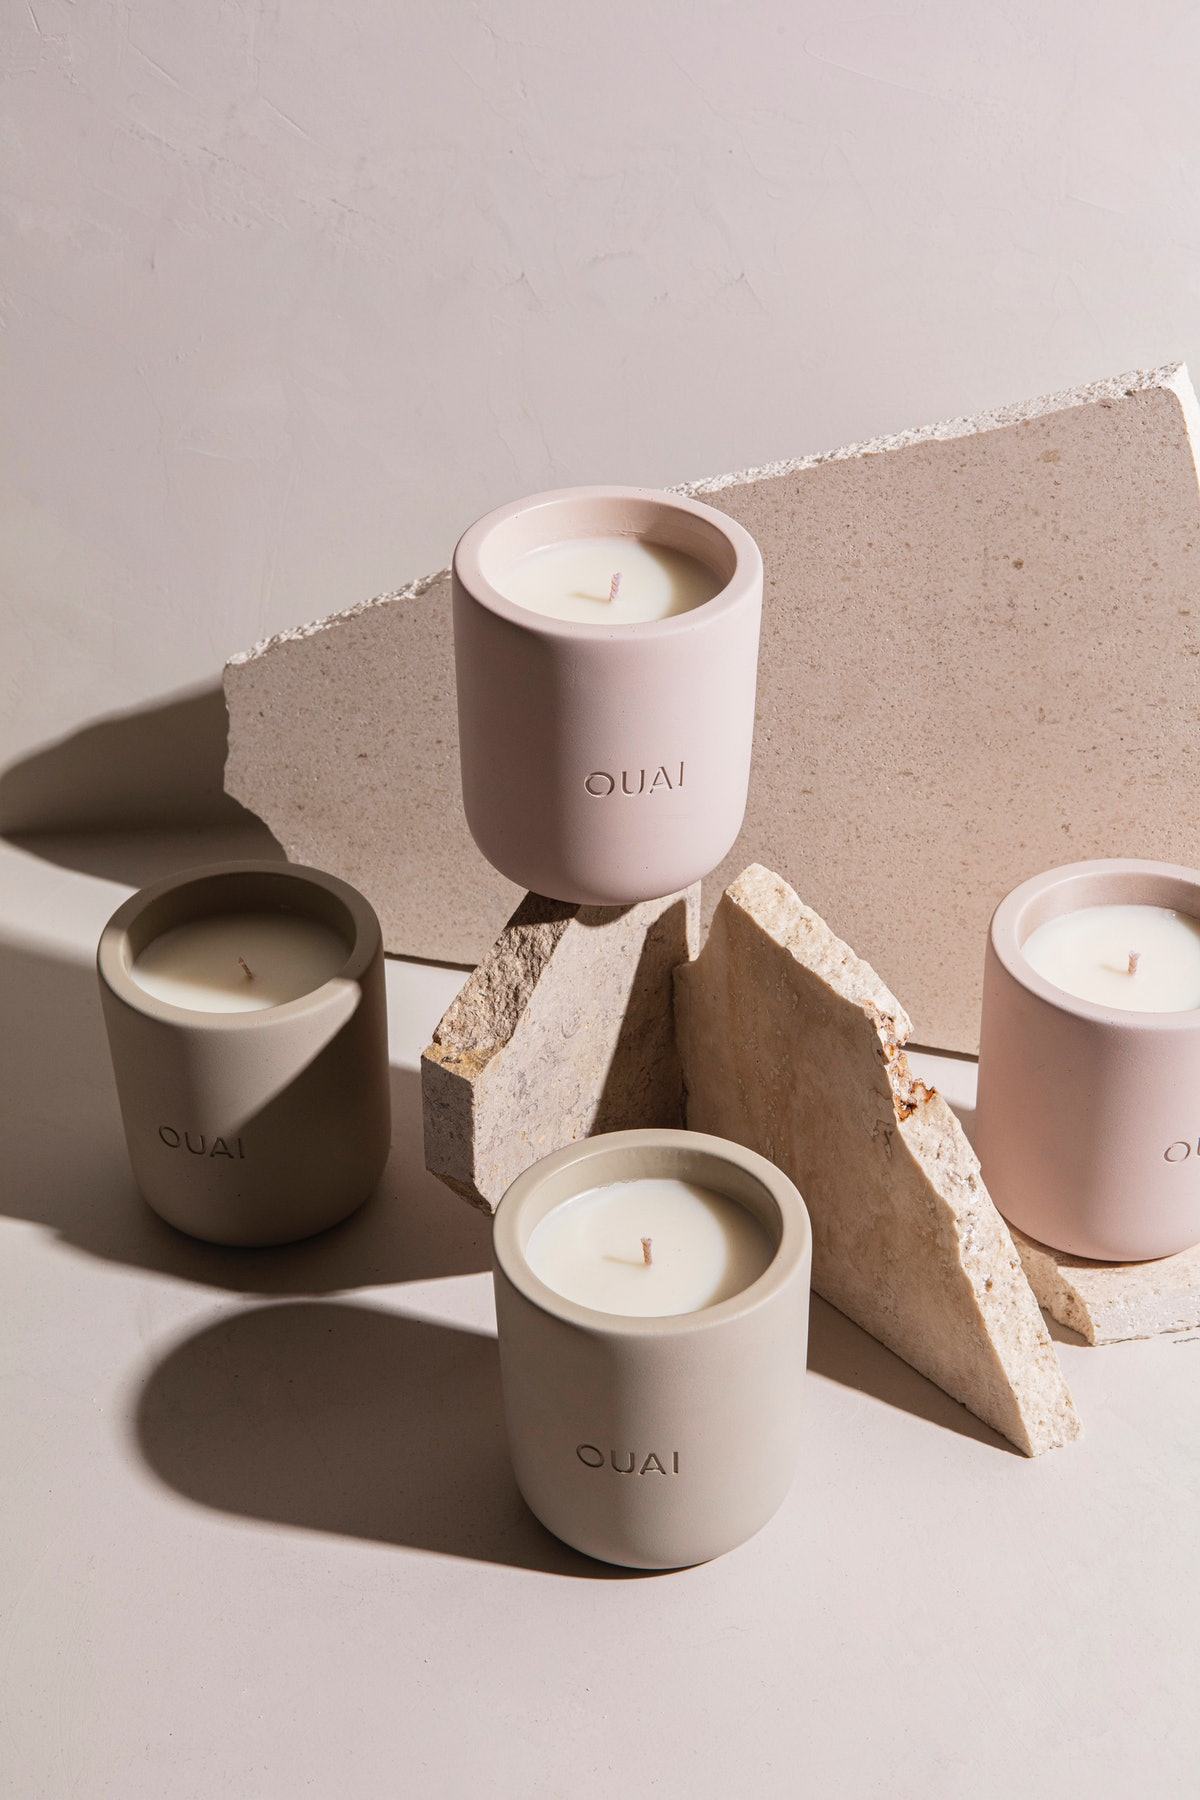 Ouai candles in Melrose Place and North Bondi arranged around rocks